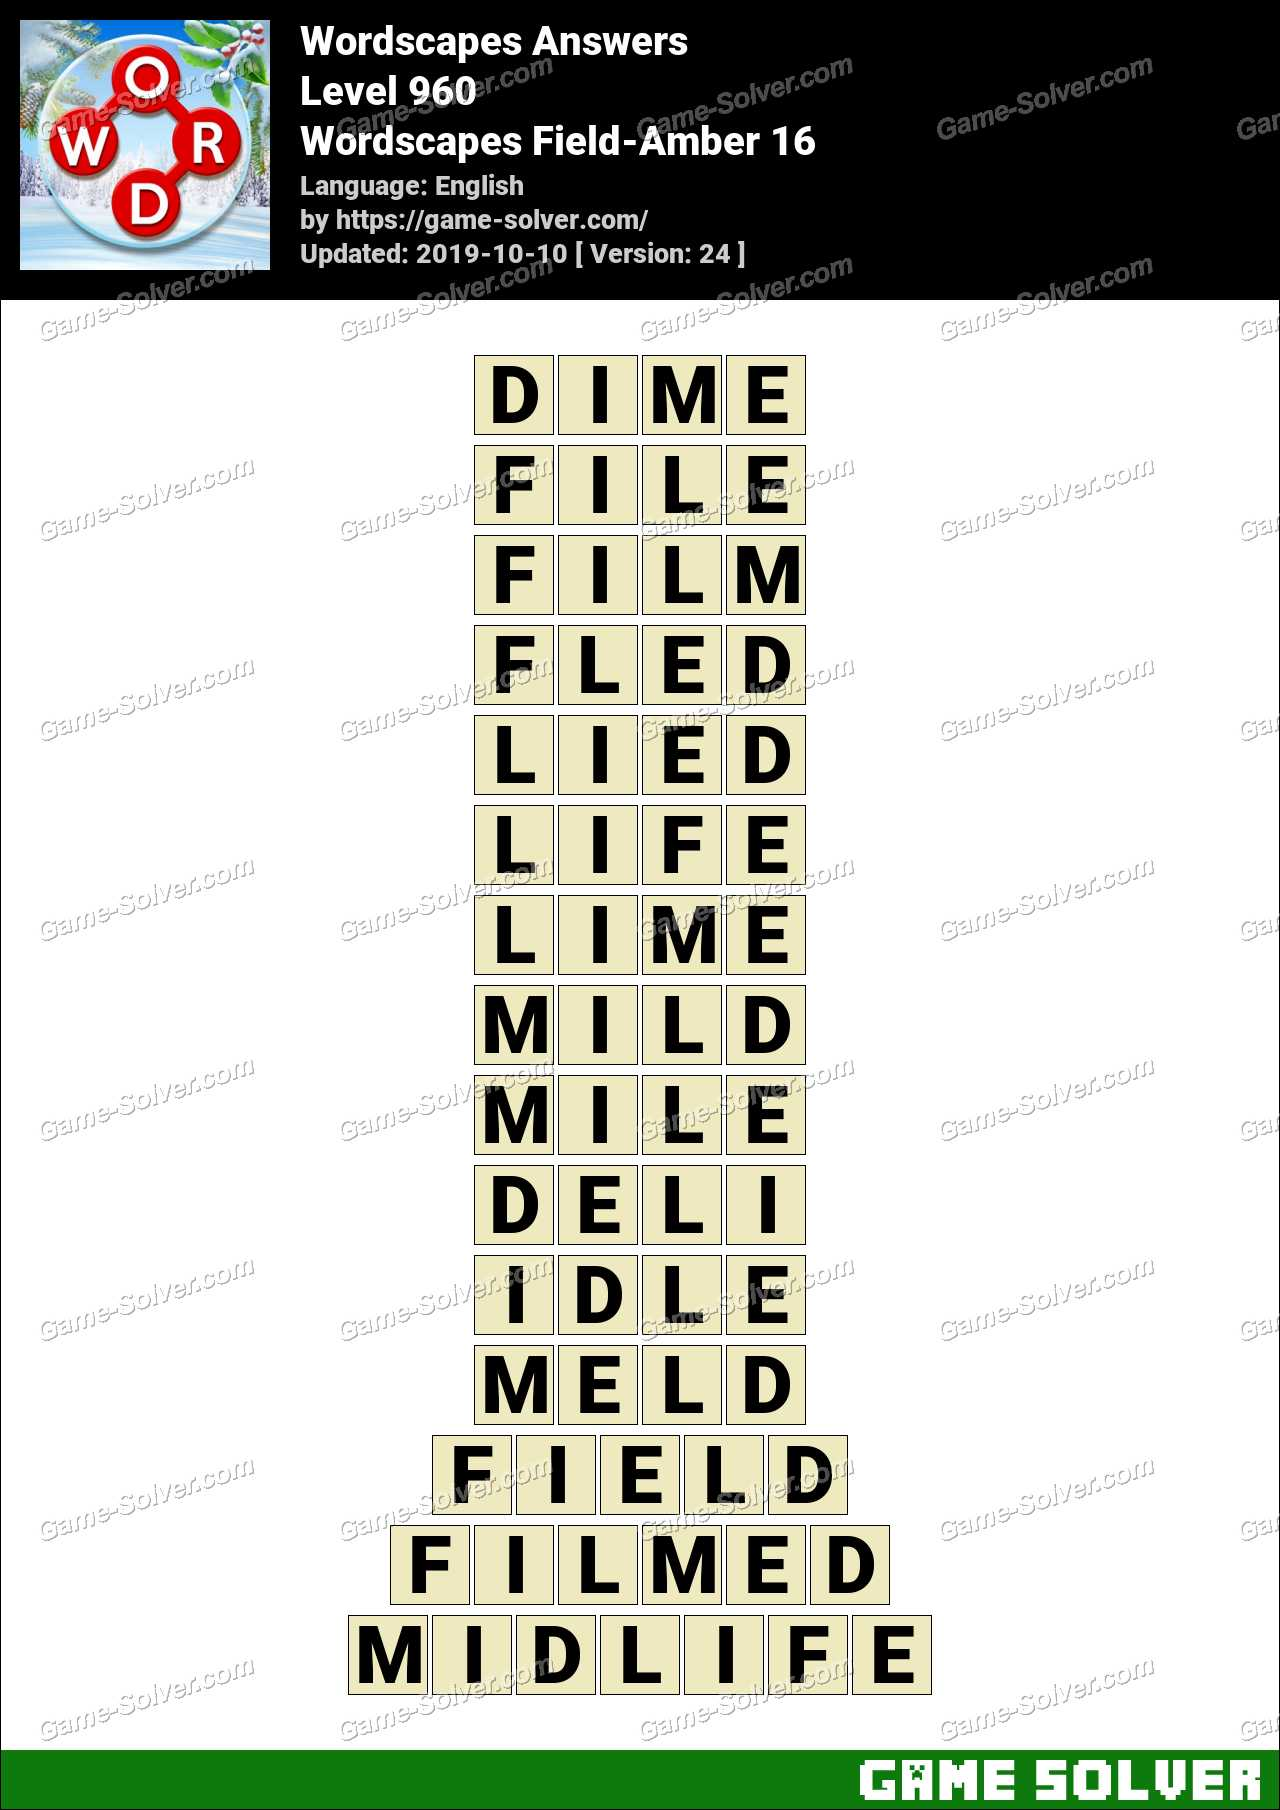 Wordscapes Field-Amber 16 Answers